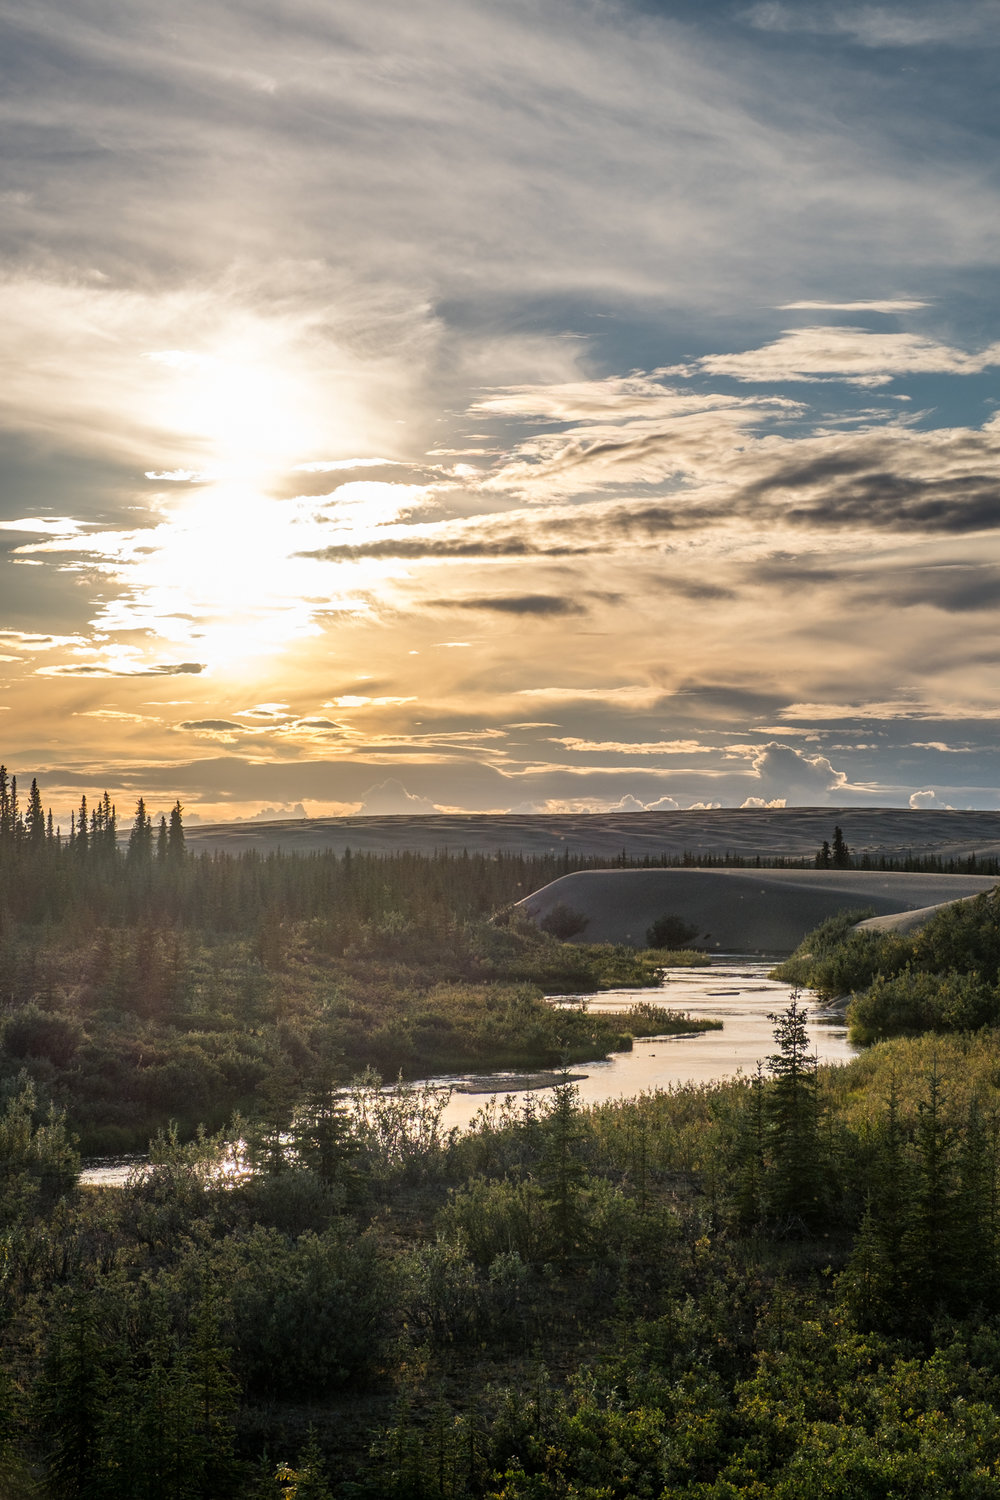 The enchanting, like-a-dream landscape at Kobuk National Park in Alaska.